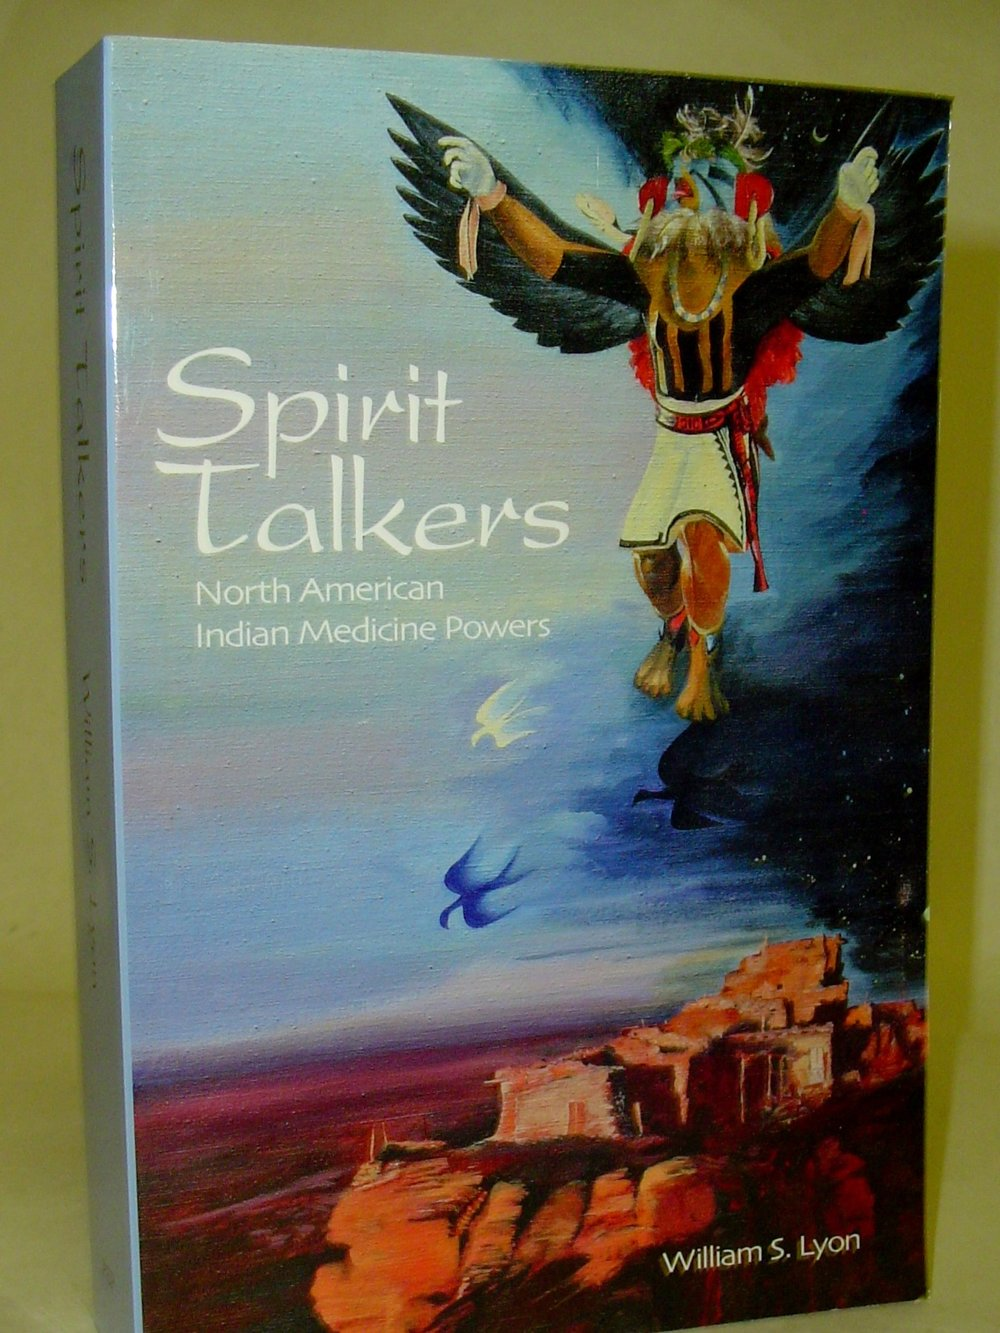 Spirit Talkers: North American Indian Medicine Powers  By William S. Lyon  $20  Anthropologist William Lyon covers a wide range of medicine powers and how they are activated. Based on thirty years of research on North American Indian shamanism, this is one of the most interesting books on North American Indians.   Read more on eBay